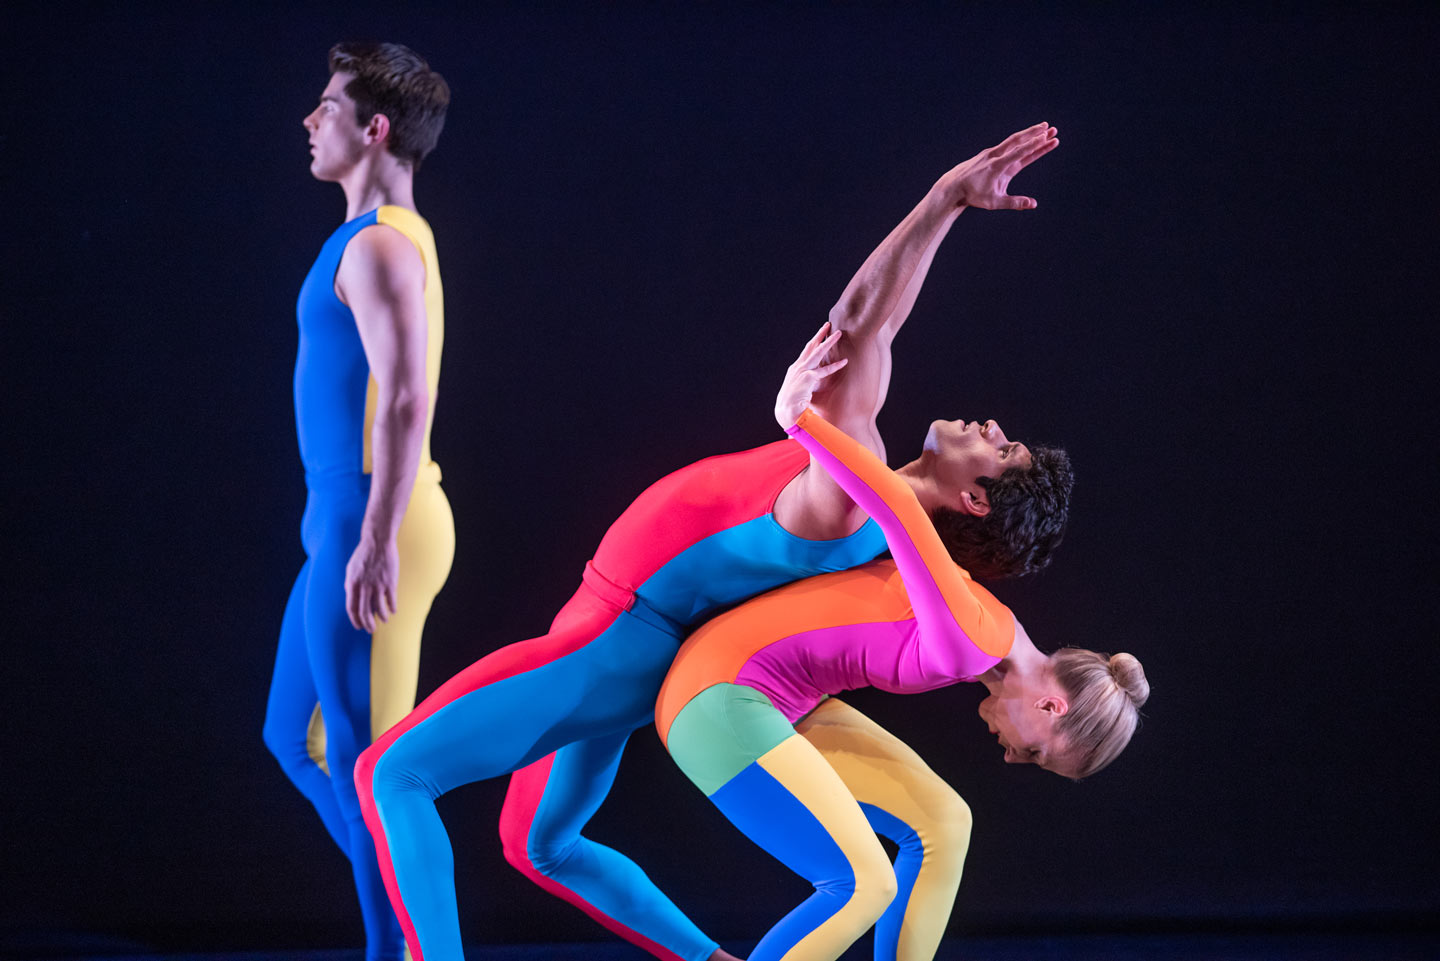 Three Taylor 2 Dance dancers with colorful outfits perform on stage at Lafayette College's Williams Center for the Arts.